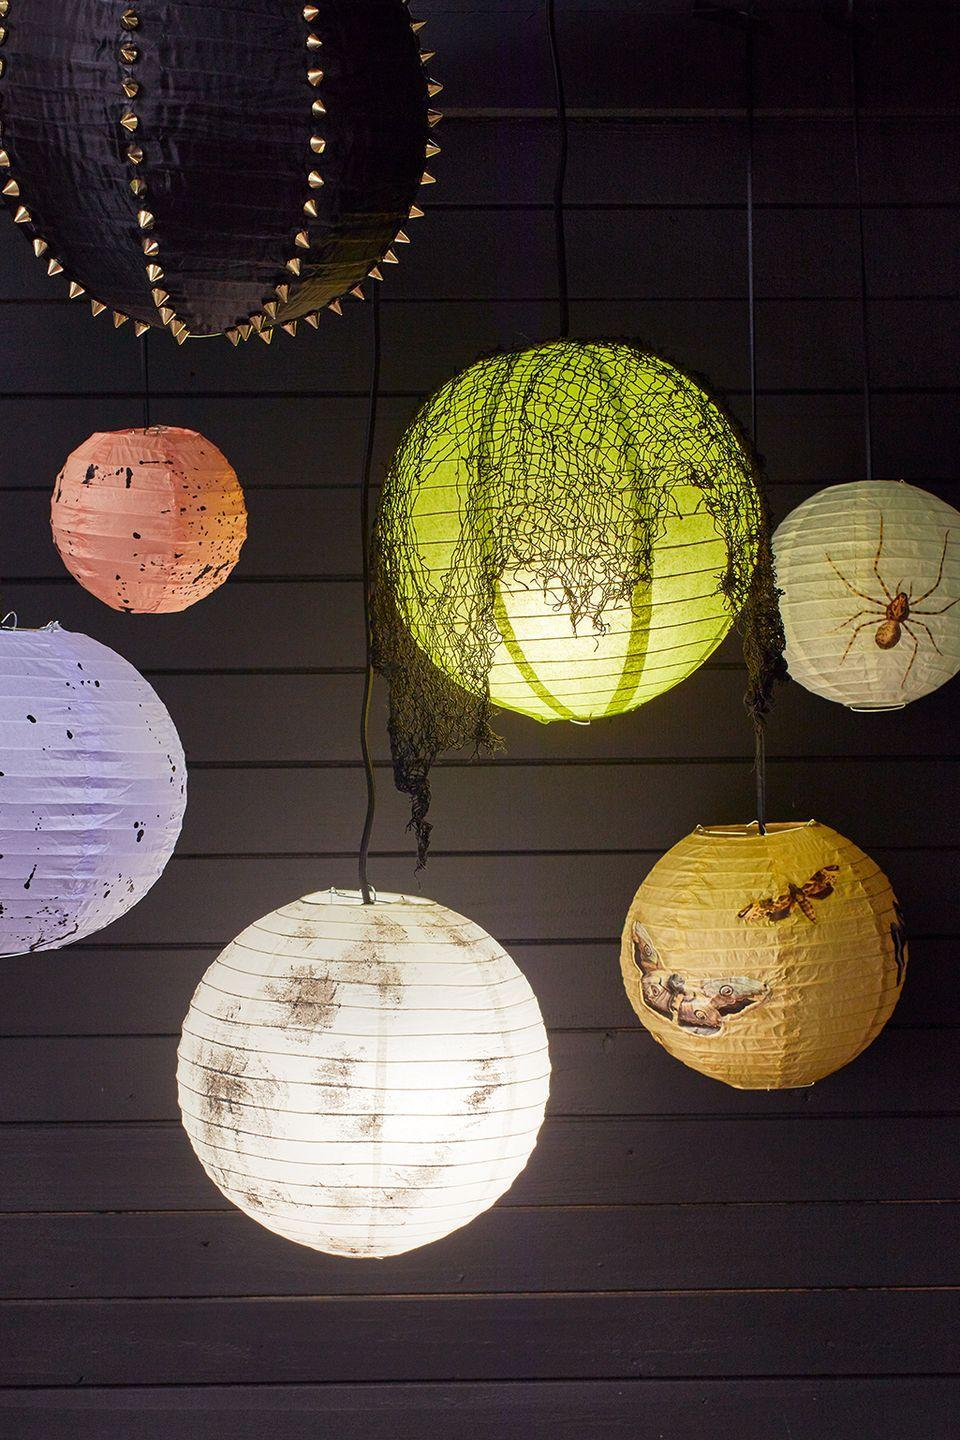 """<p>Simple paper lanterns are easily transformed with clip art, paint, studs and gauze. They look even more eerie in the dark!</p><p><em><a href=""""https://www.goodhousekeeping.com/home/craft-ideas/a34329004/diy-halloween-lantern-tutorial/"""" rel=""""nofollow noopener"""" target=""""_blank"""" data-ylk=""""slk:Get the tutorial »"""" class=""""link rapid-noclick-resp"""">Get the tutorial »</a></em></p>"""